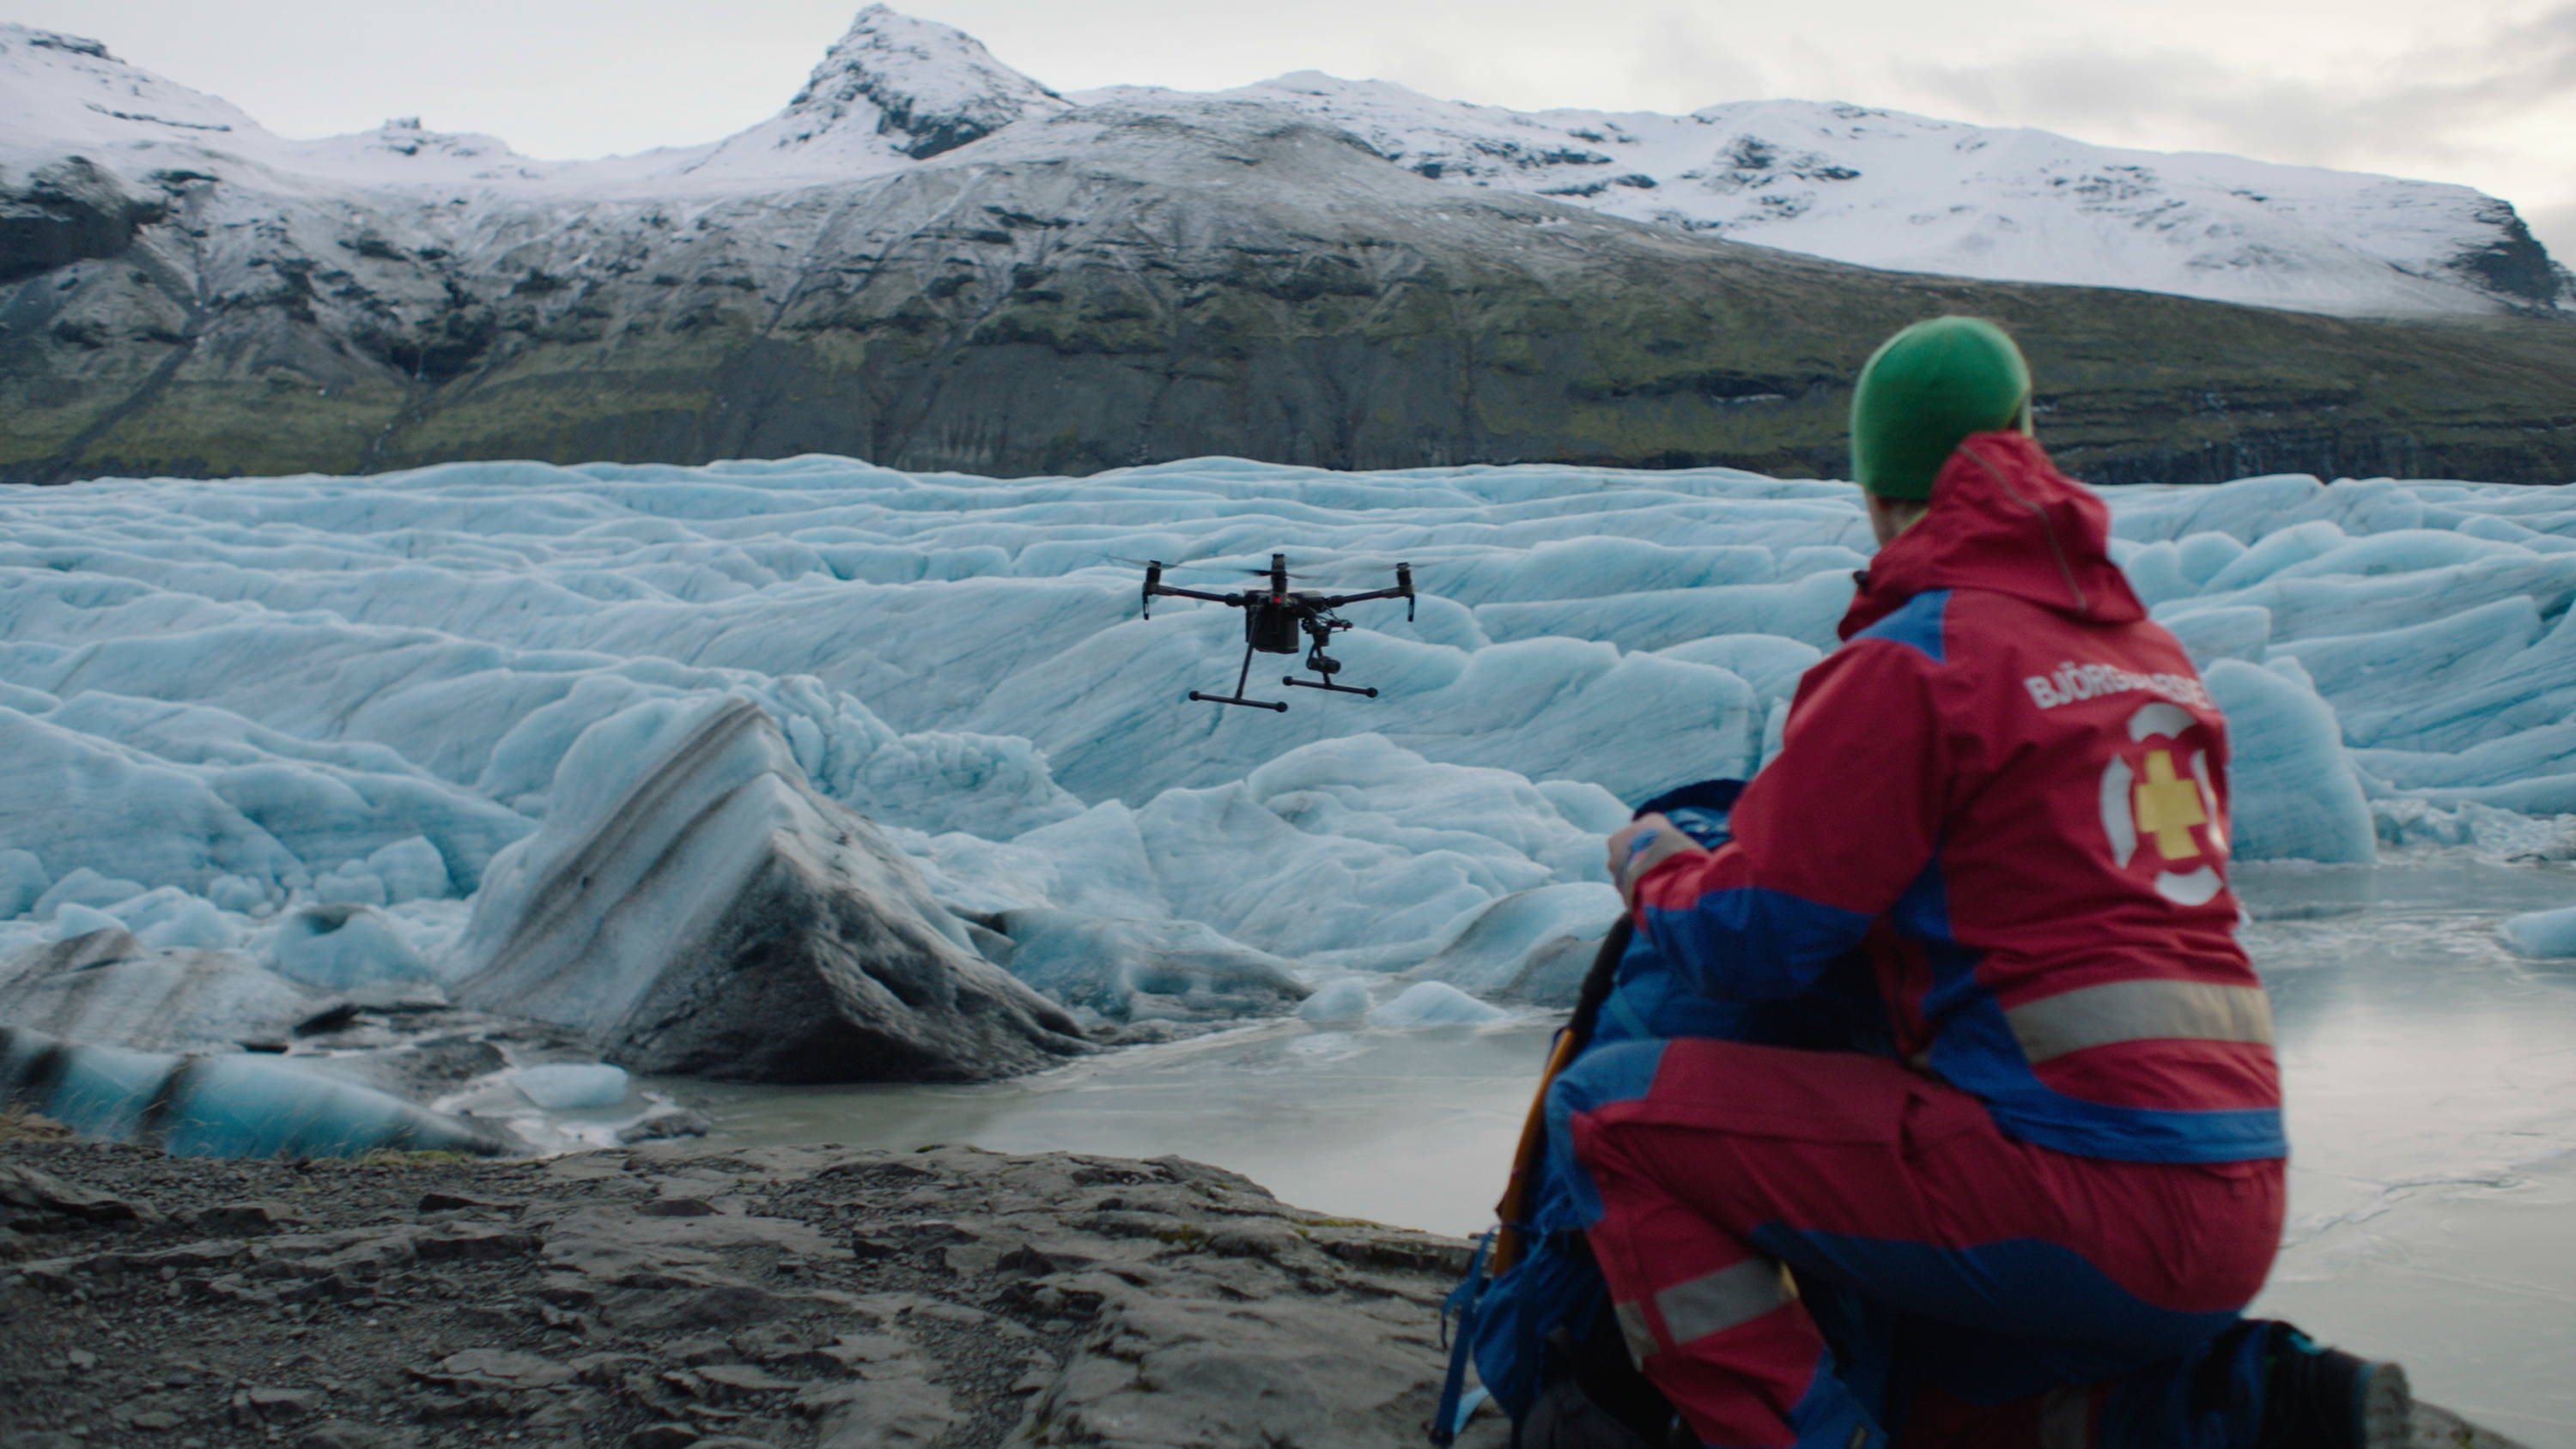 Drones Saving Lives - Dr Drone